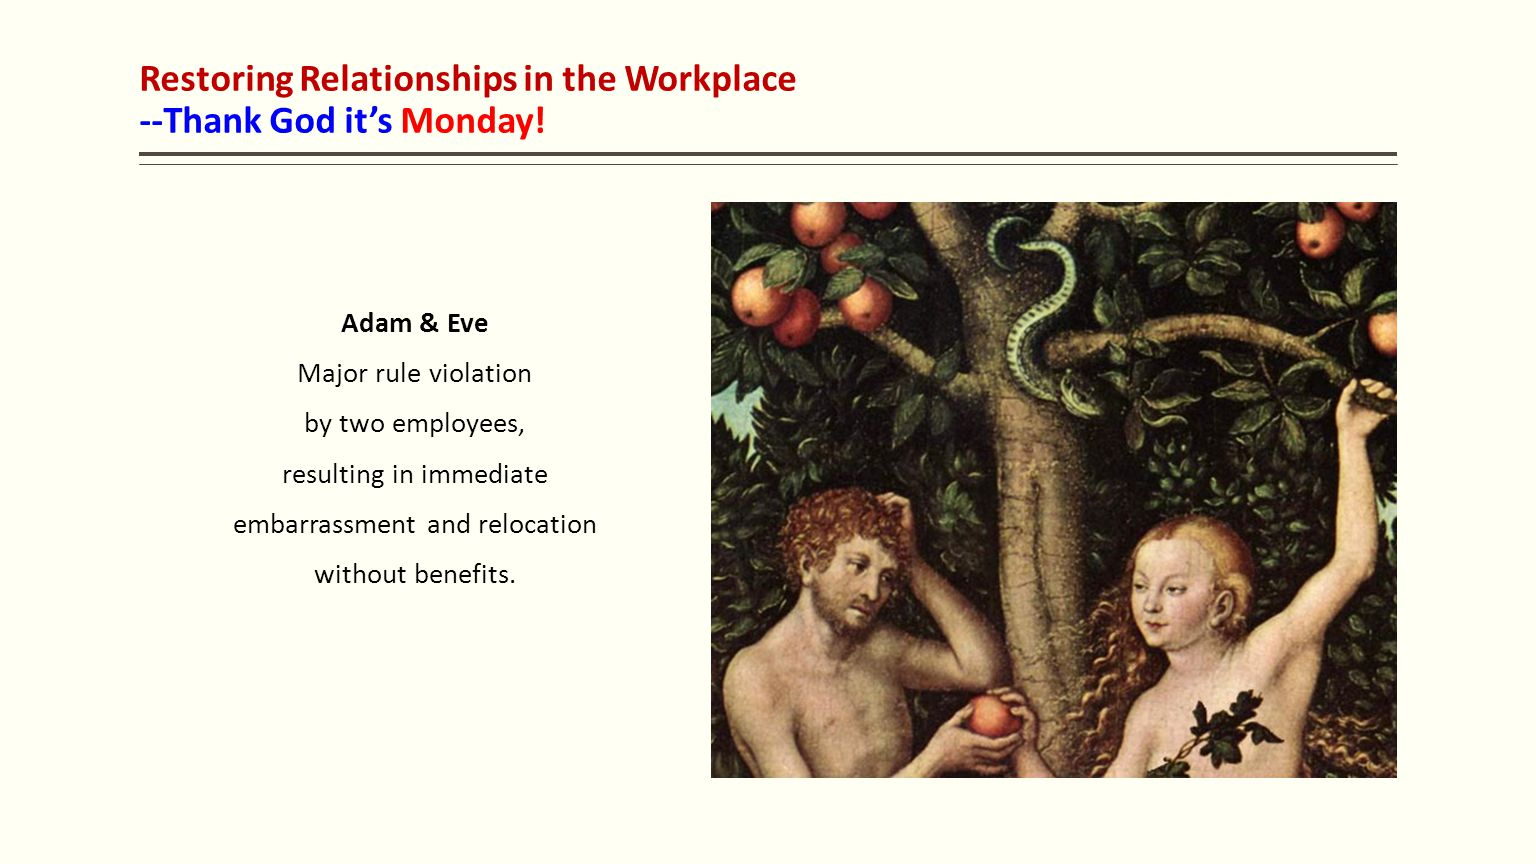 Adam & Eve Major rule violation by two employees, resulting in immediate embarrassment and relocation without benefits.